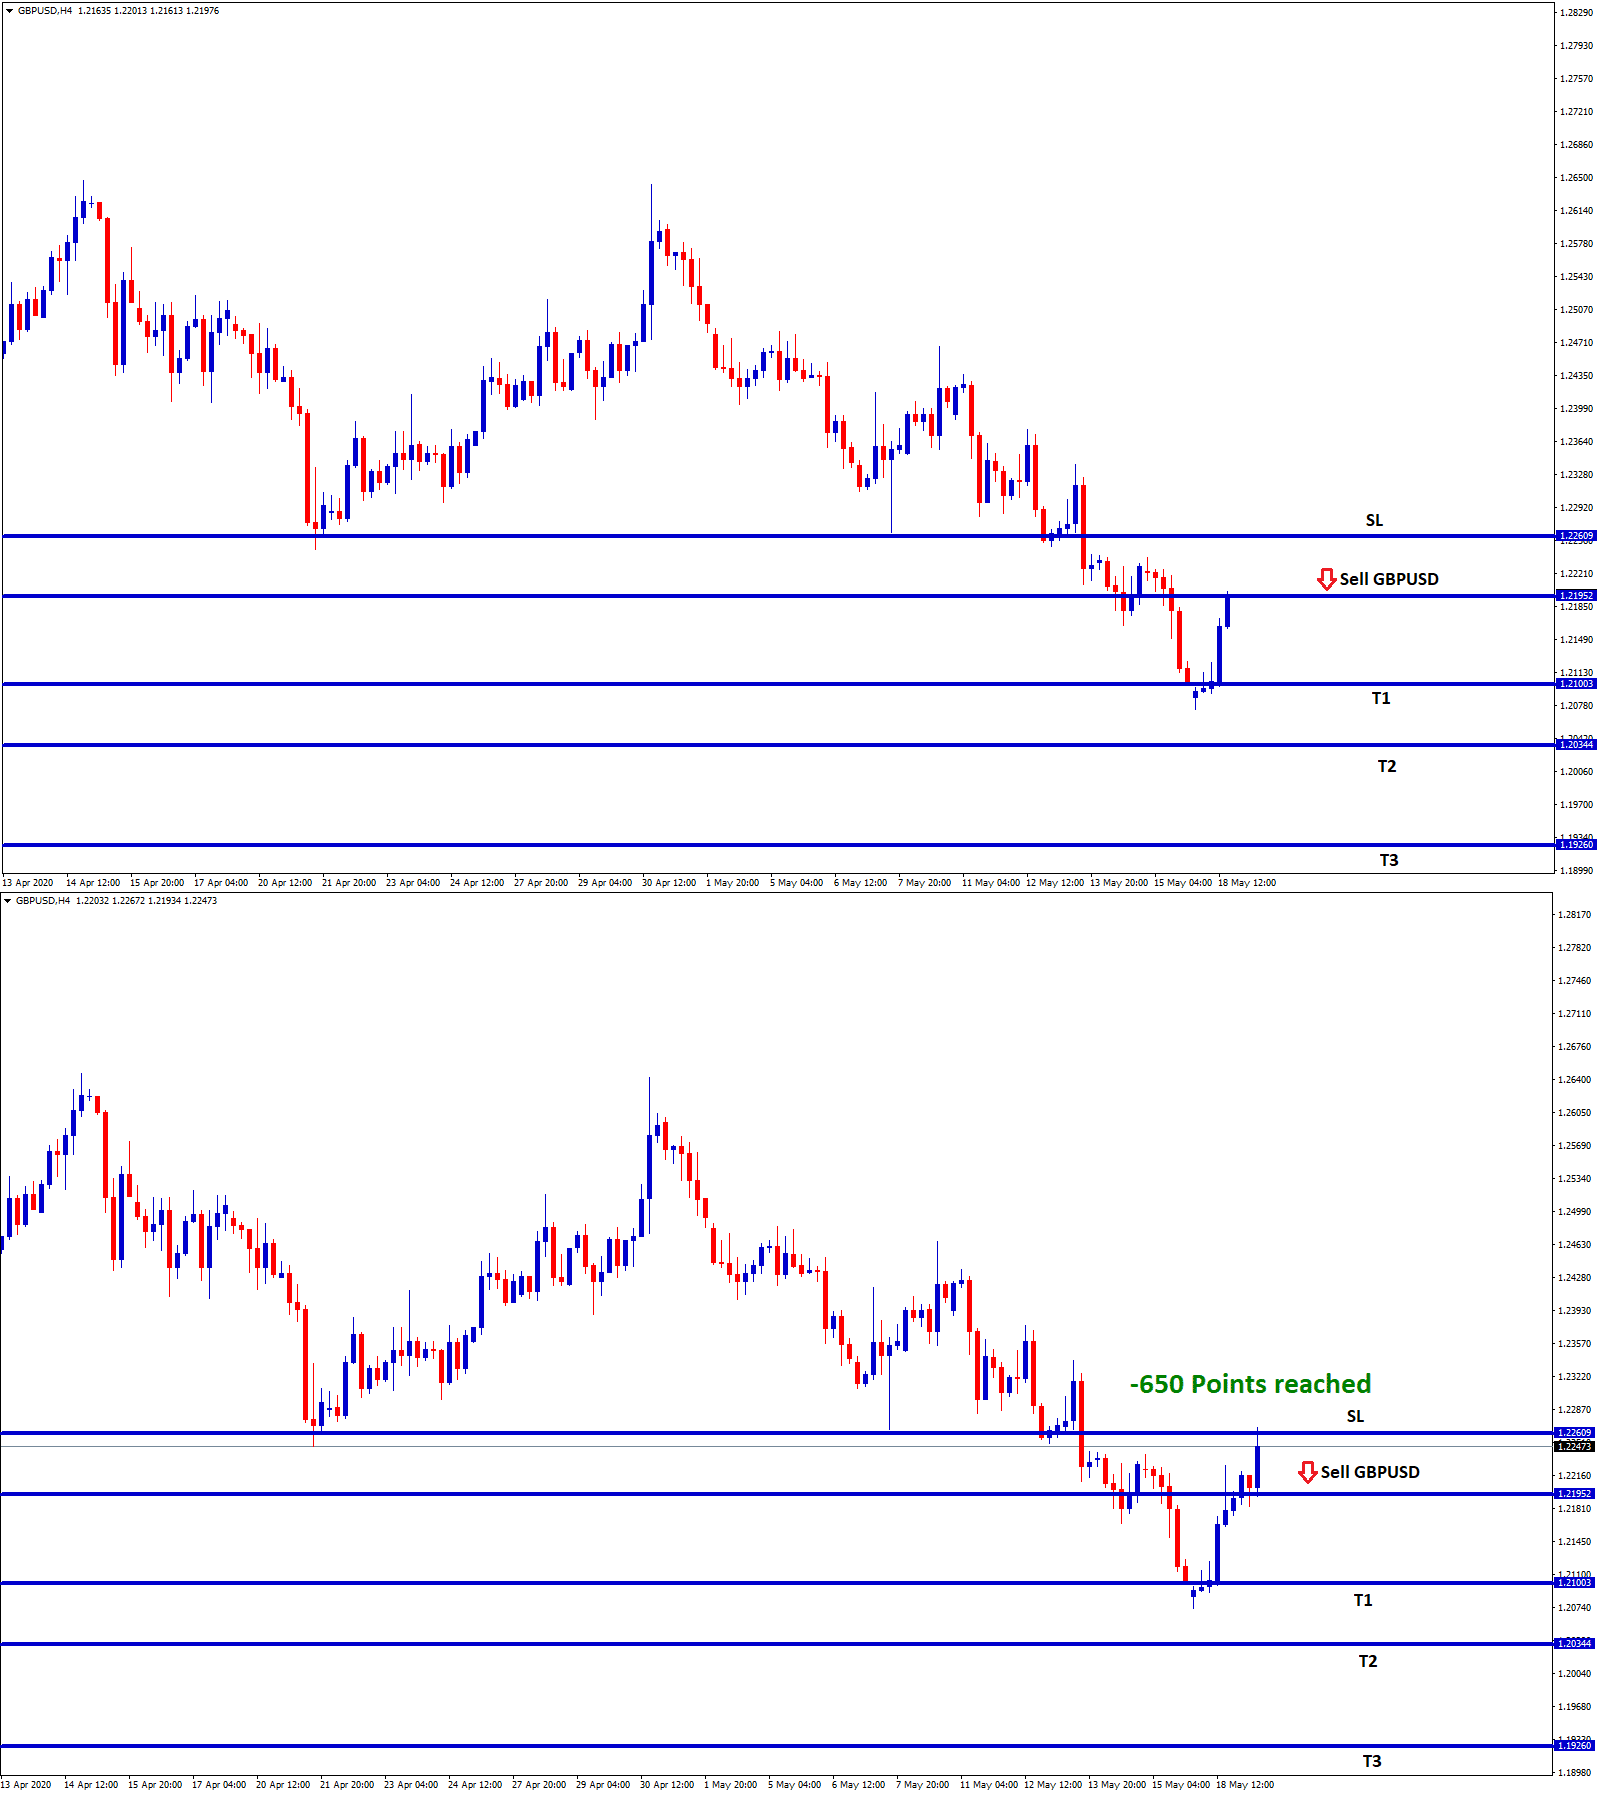 stop loss price hits in gbpusd forex sell signal